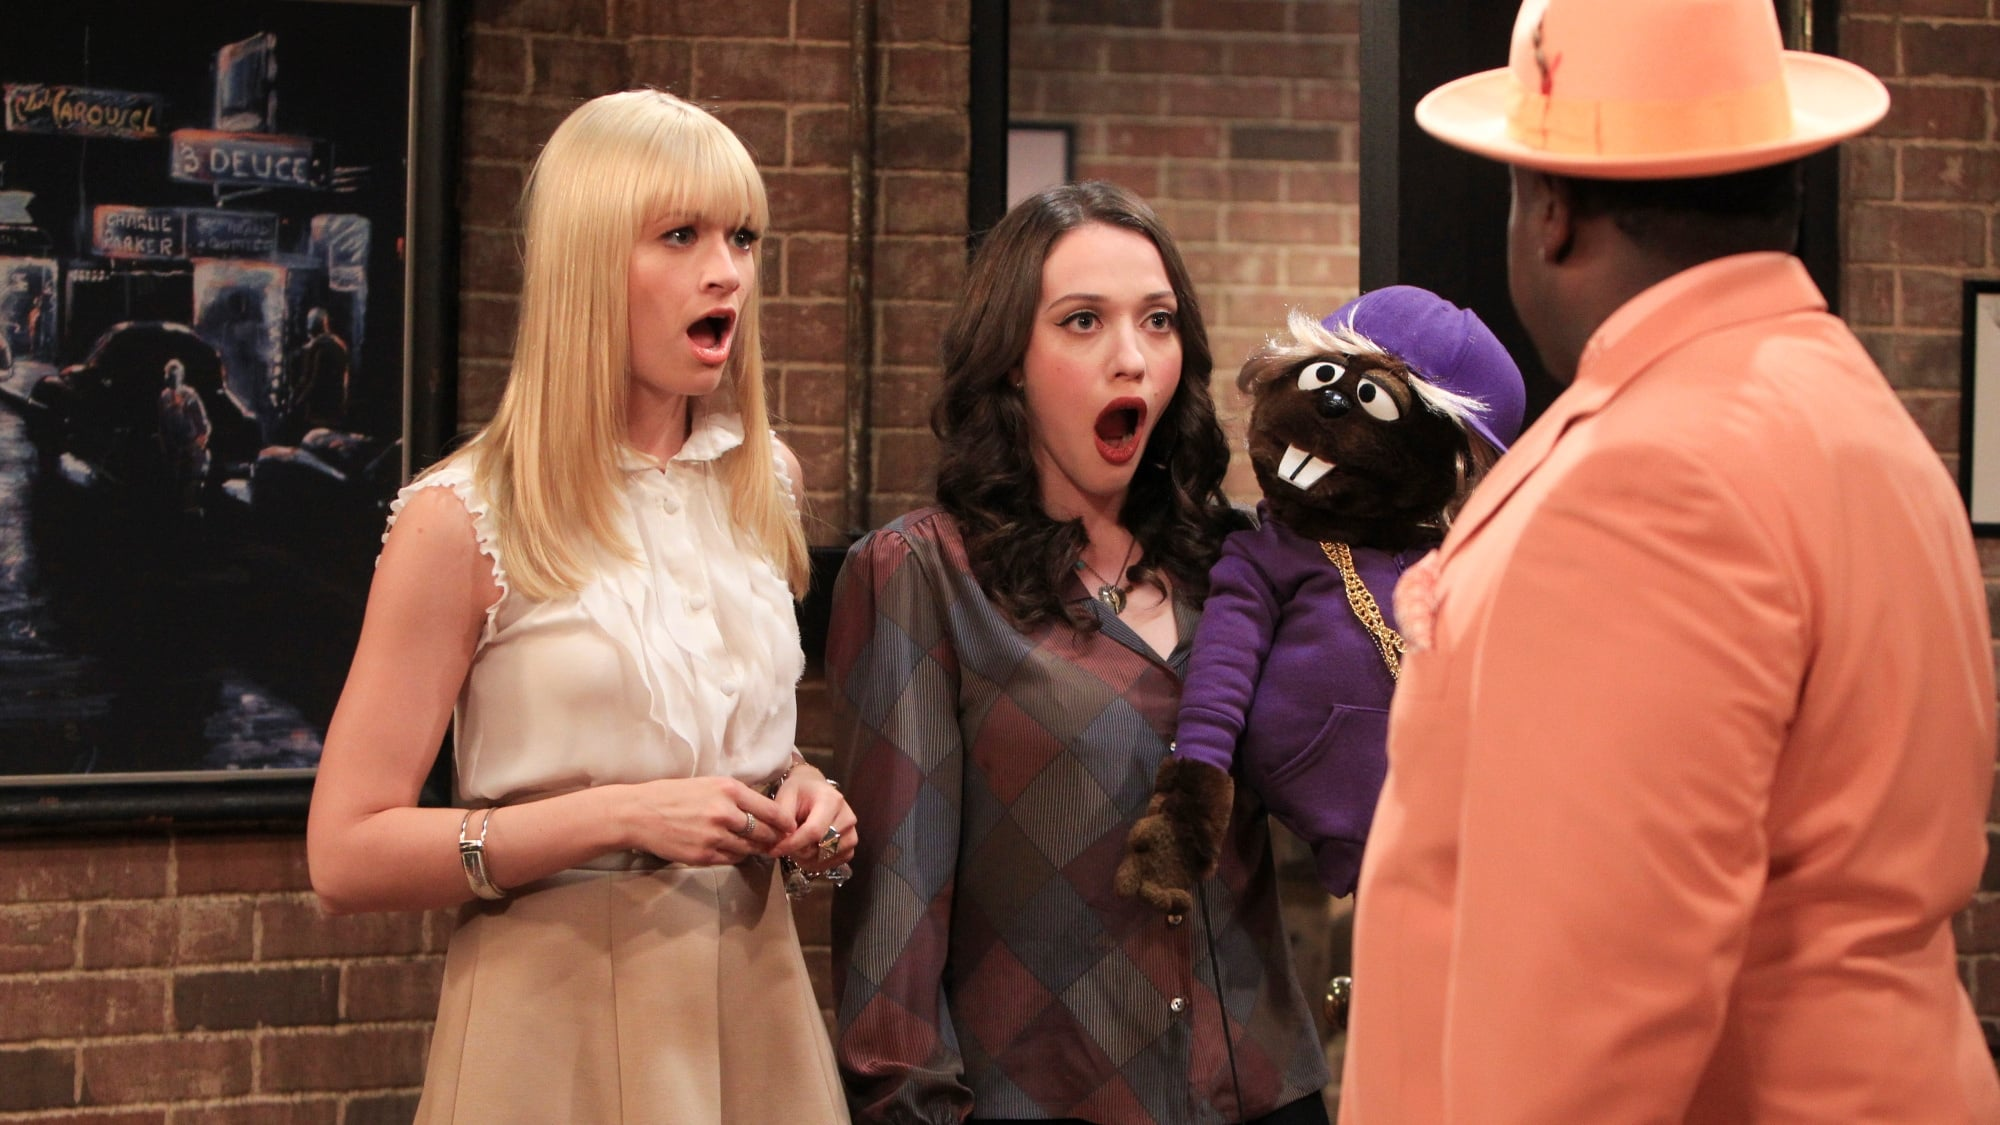 2 broke girls episode guide